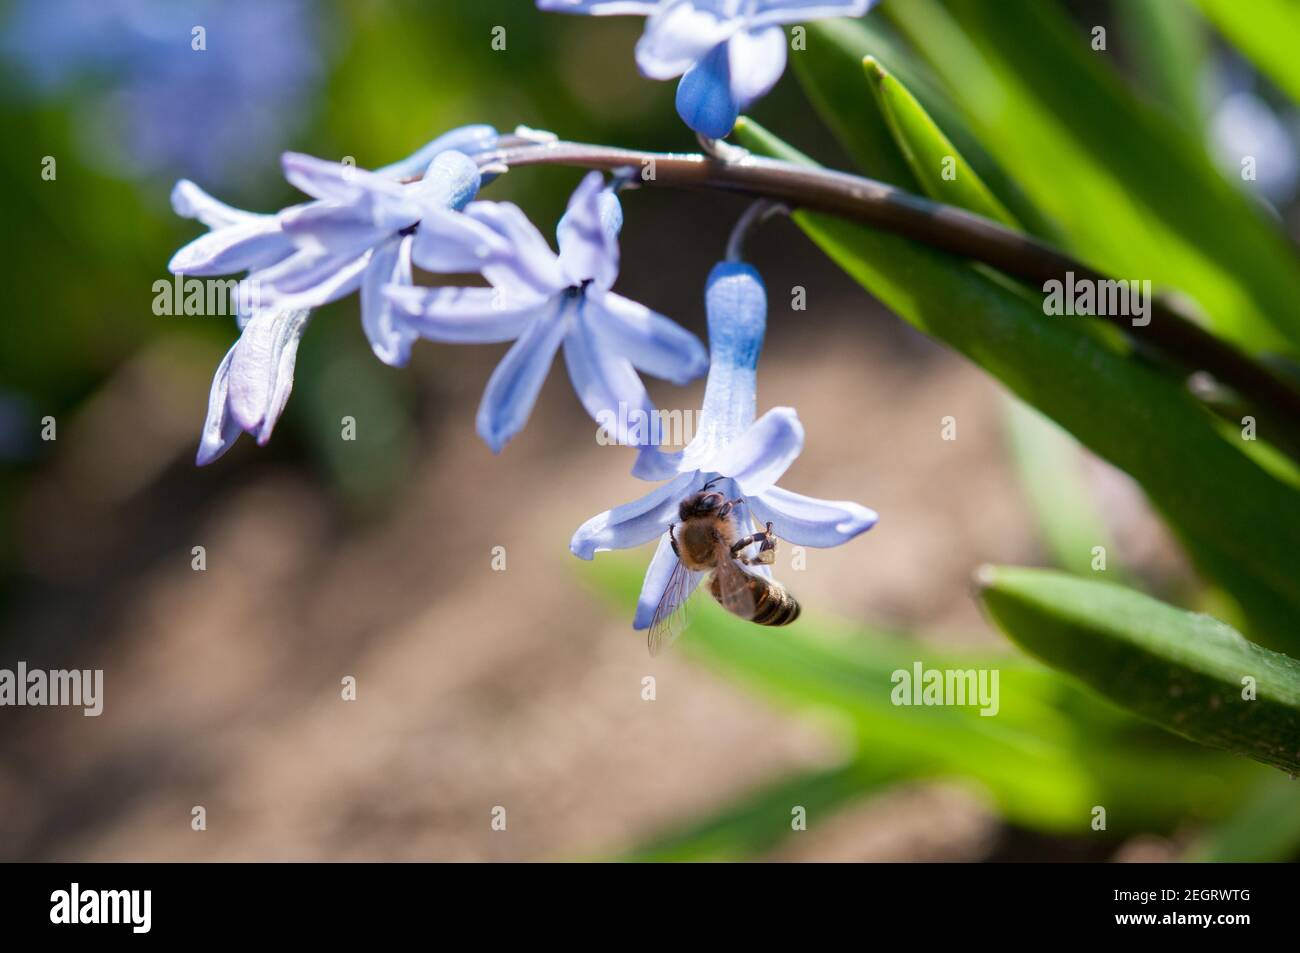 A bee collects pollen from a blossoming blue hyacinth Stock Photo